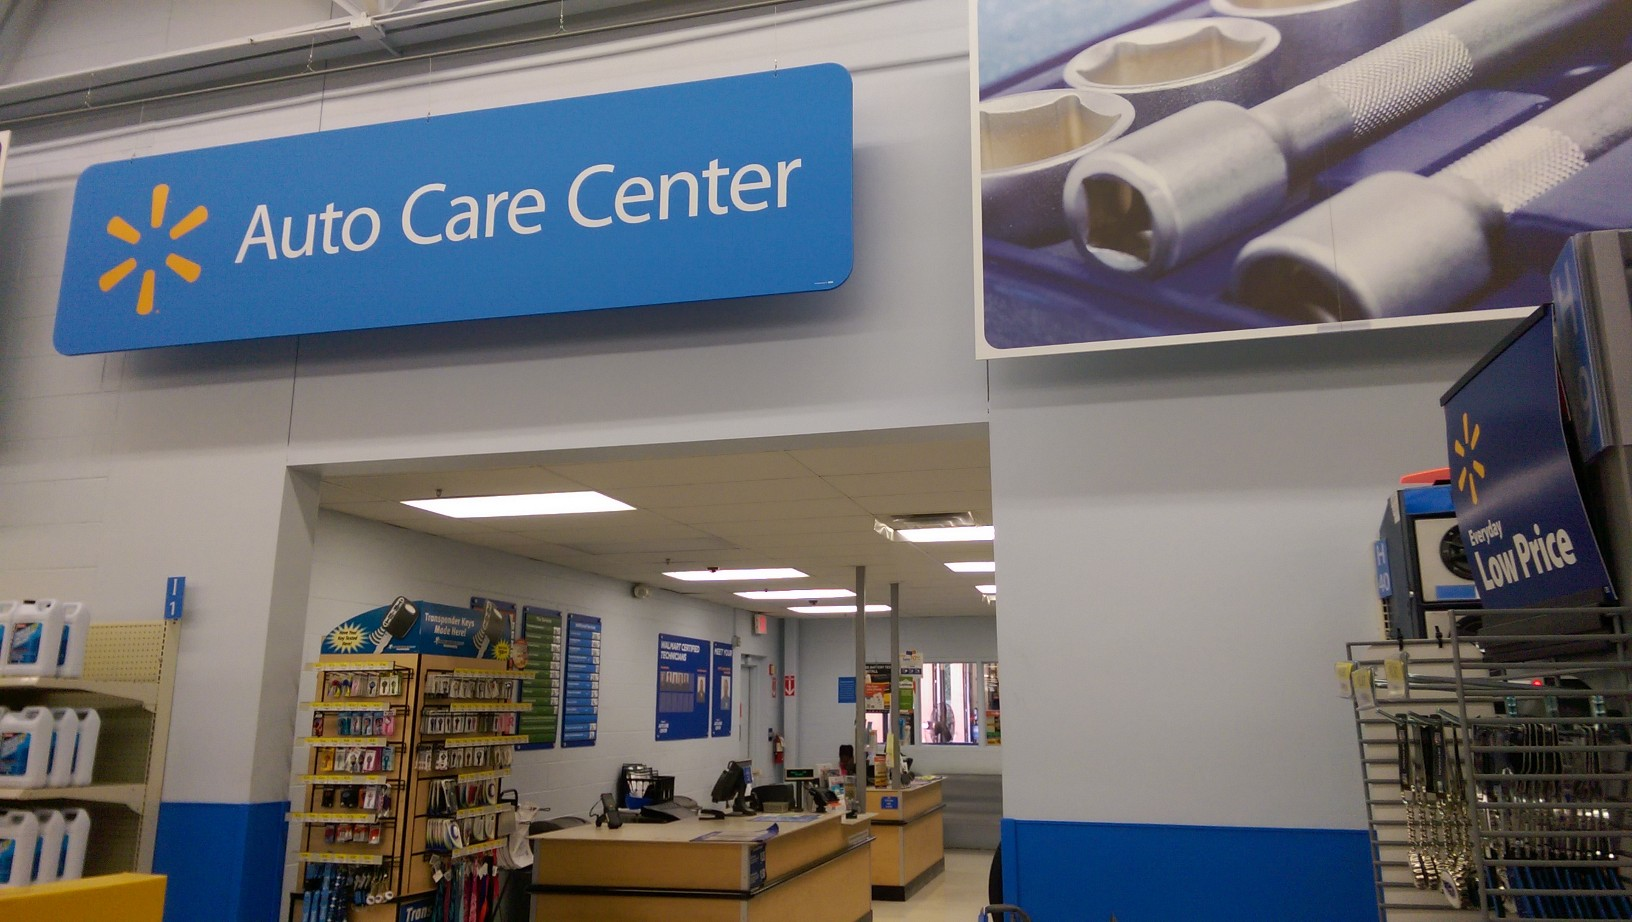 The Auto Care Center is located in the back of most Walmart stores.